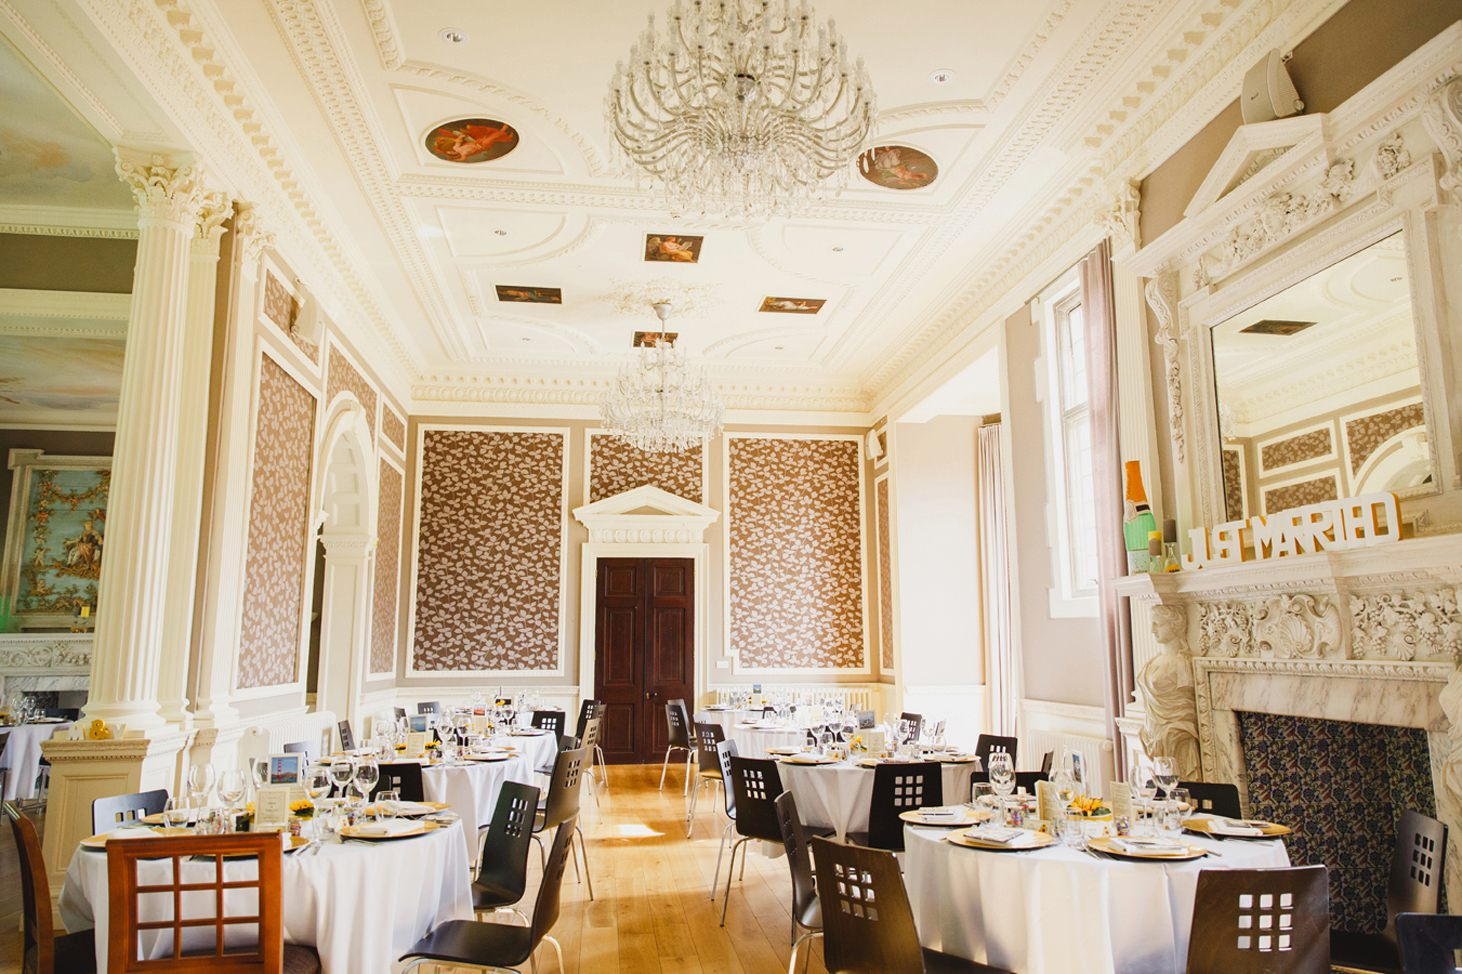 Wycombe Abbey wedding photography picture of dining hall for wedding breakfast